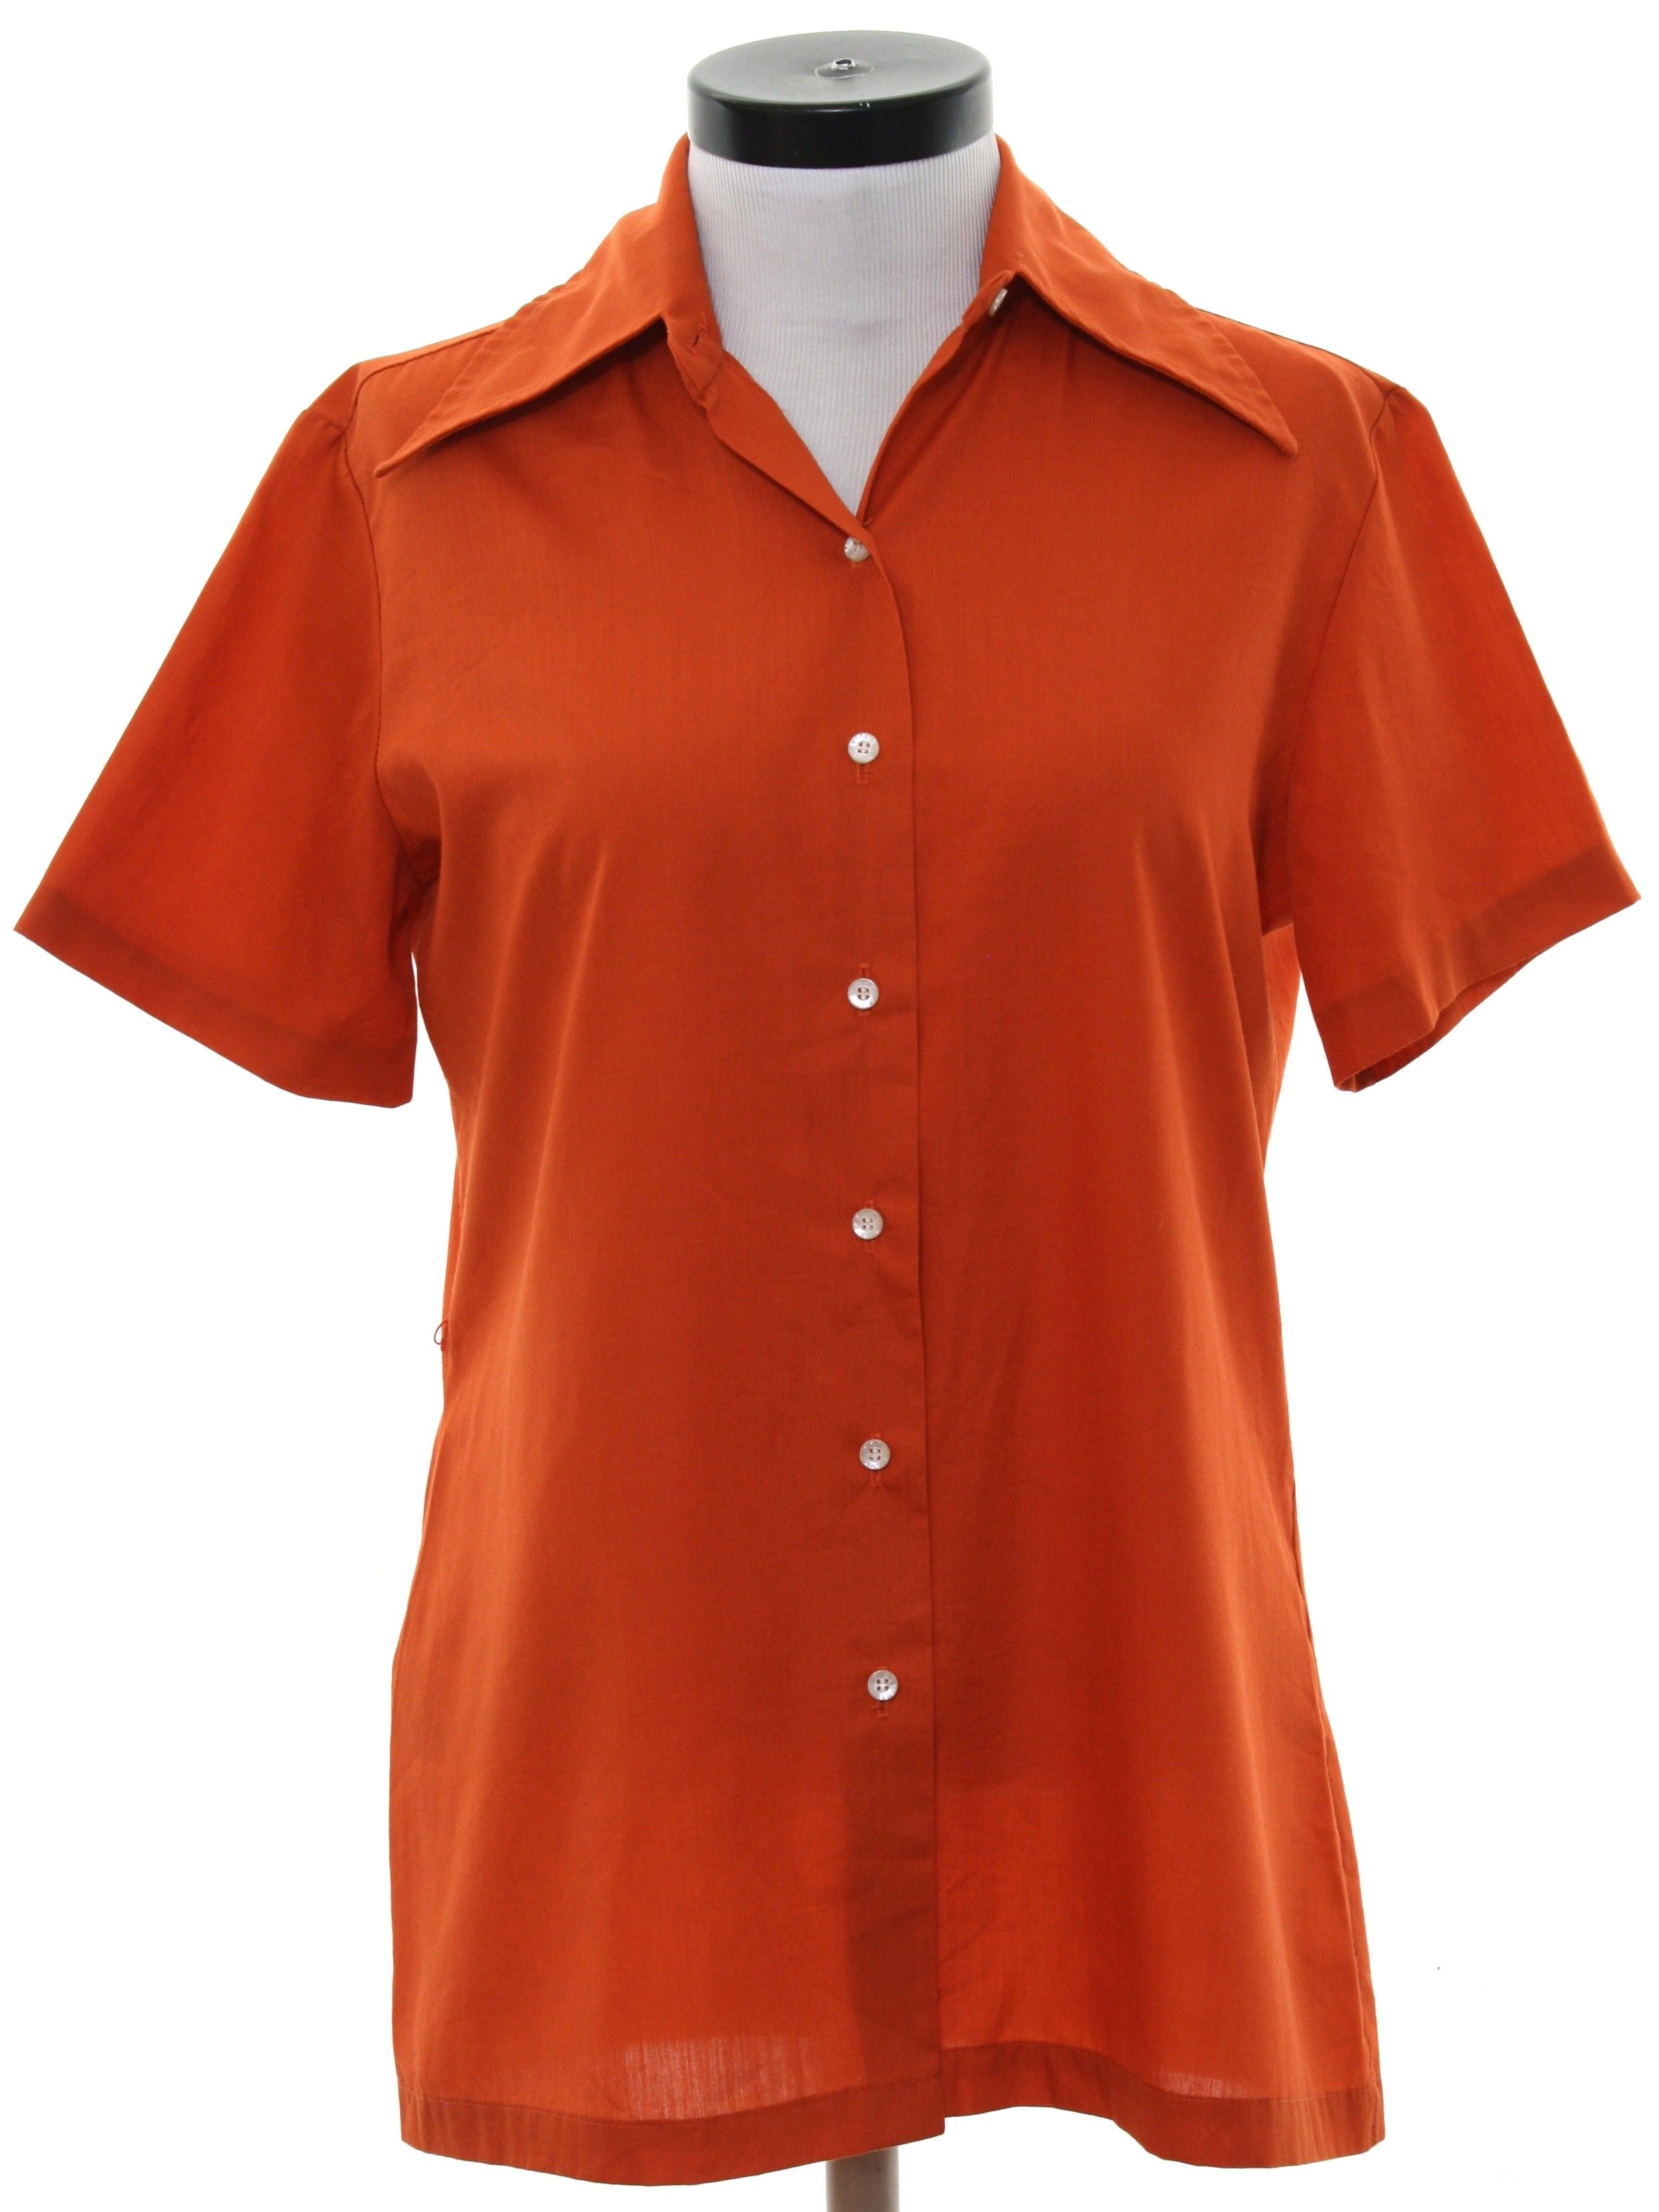 a264ec72 70's Sears Shirt: 70s -Sears- Womens dark rust polyester cotton blend short  sleeve button up front shirt. Tunic style with belt loops on the sides for  ...